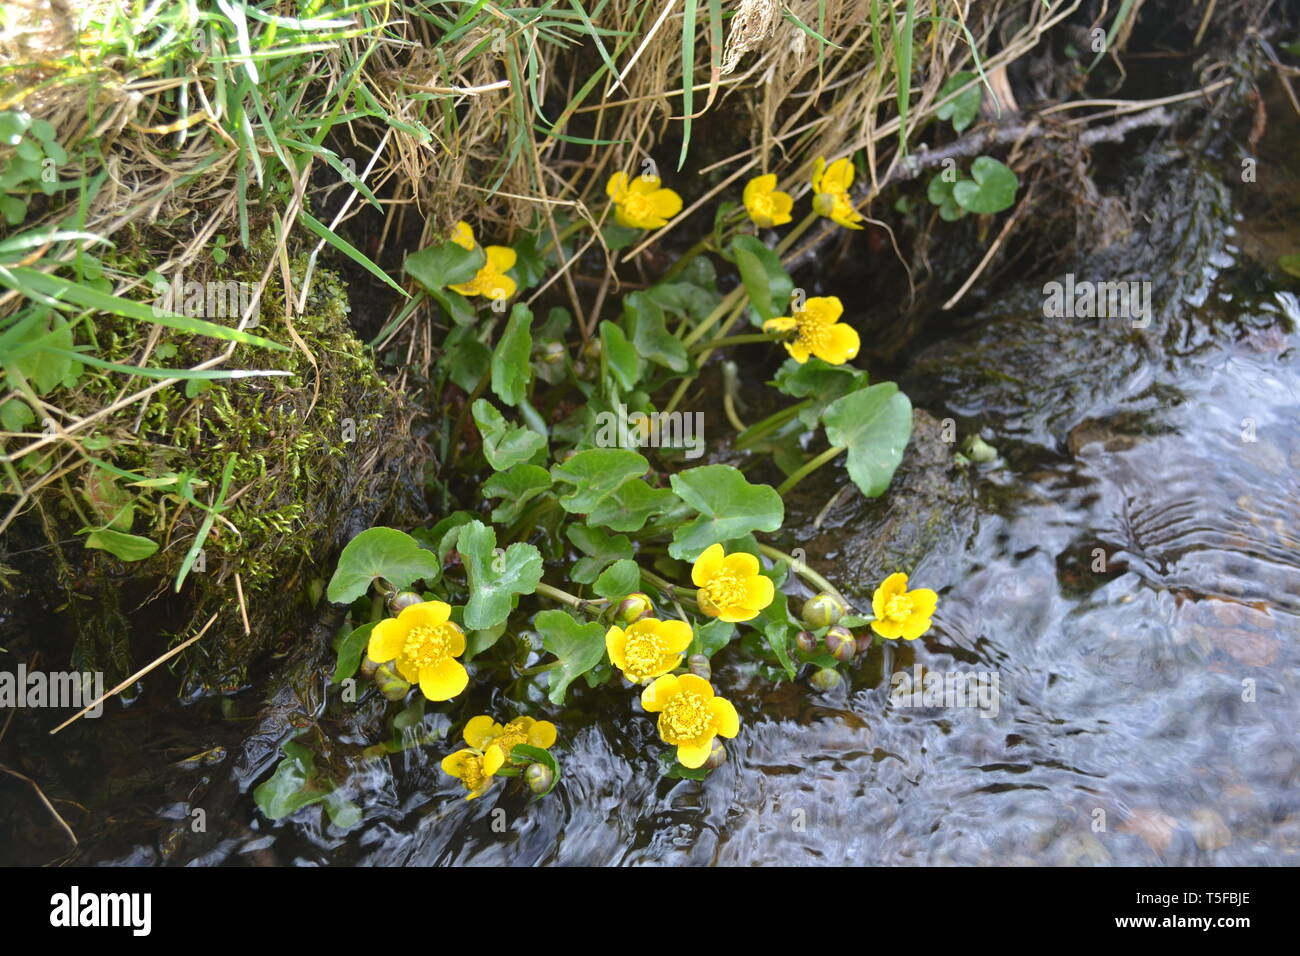 Yellow flowers growing near a stream in spring Stock Photo